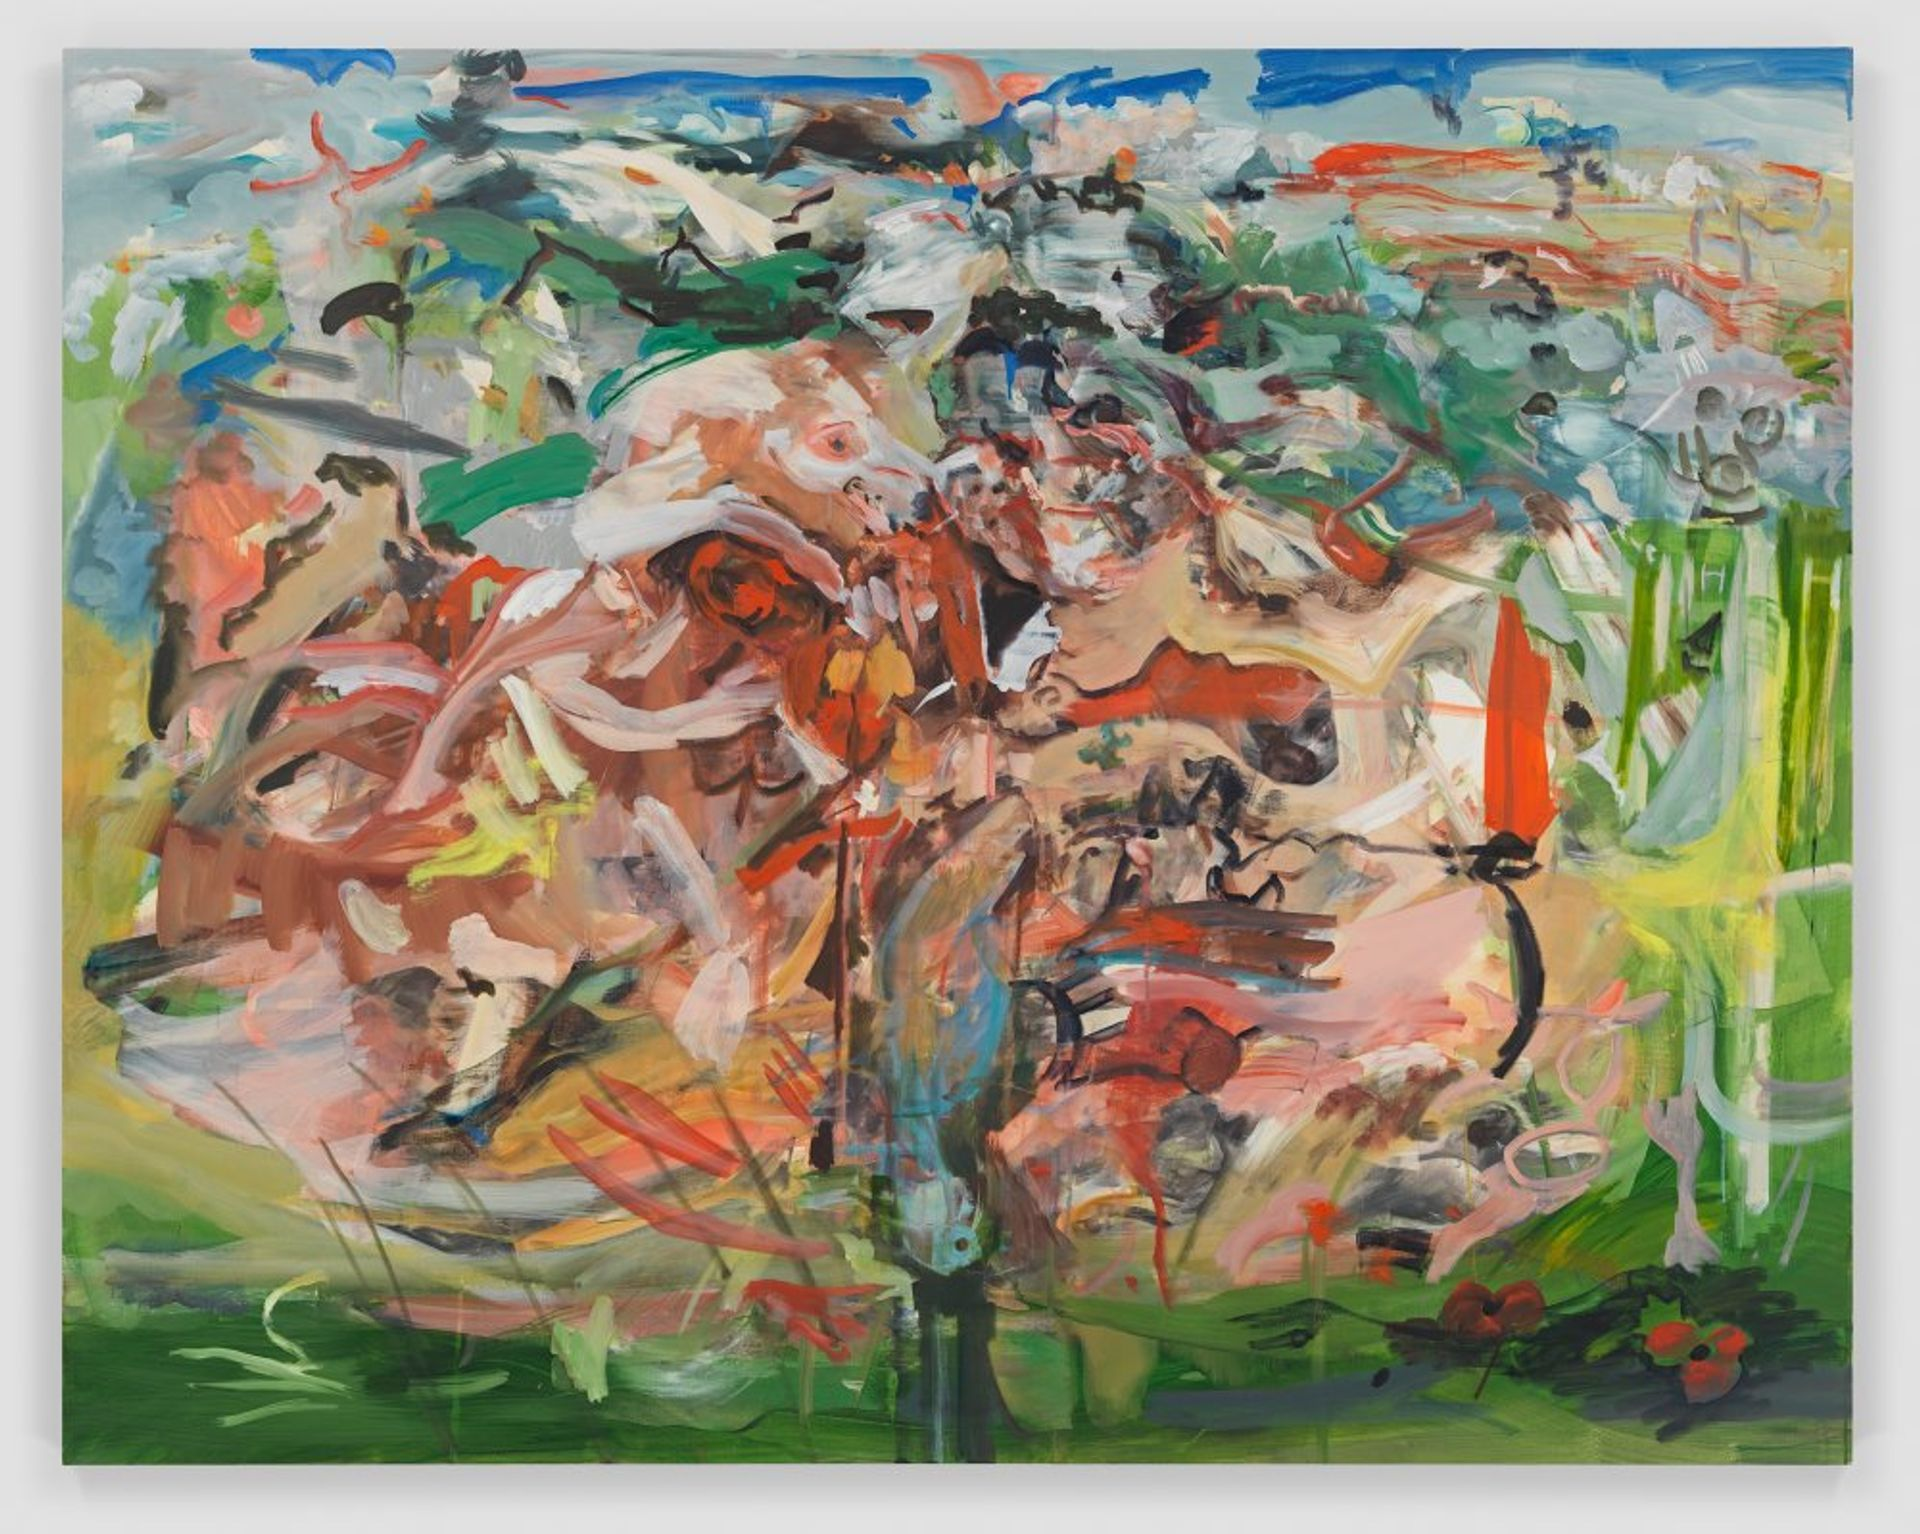 Cecily Brown's There'll be bluebirds (2019) Courtesy of the artist and Thomas Dane Gallery